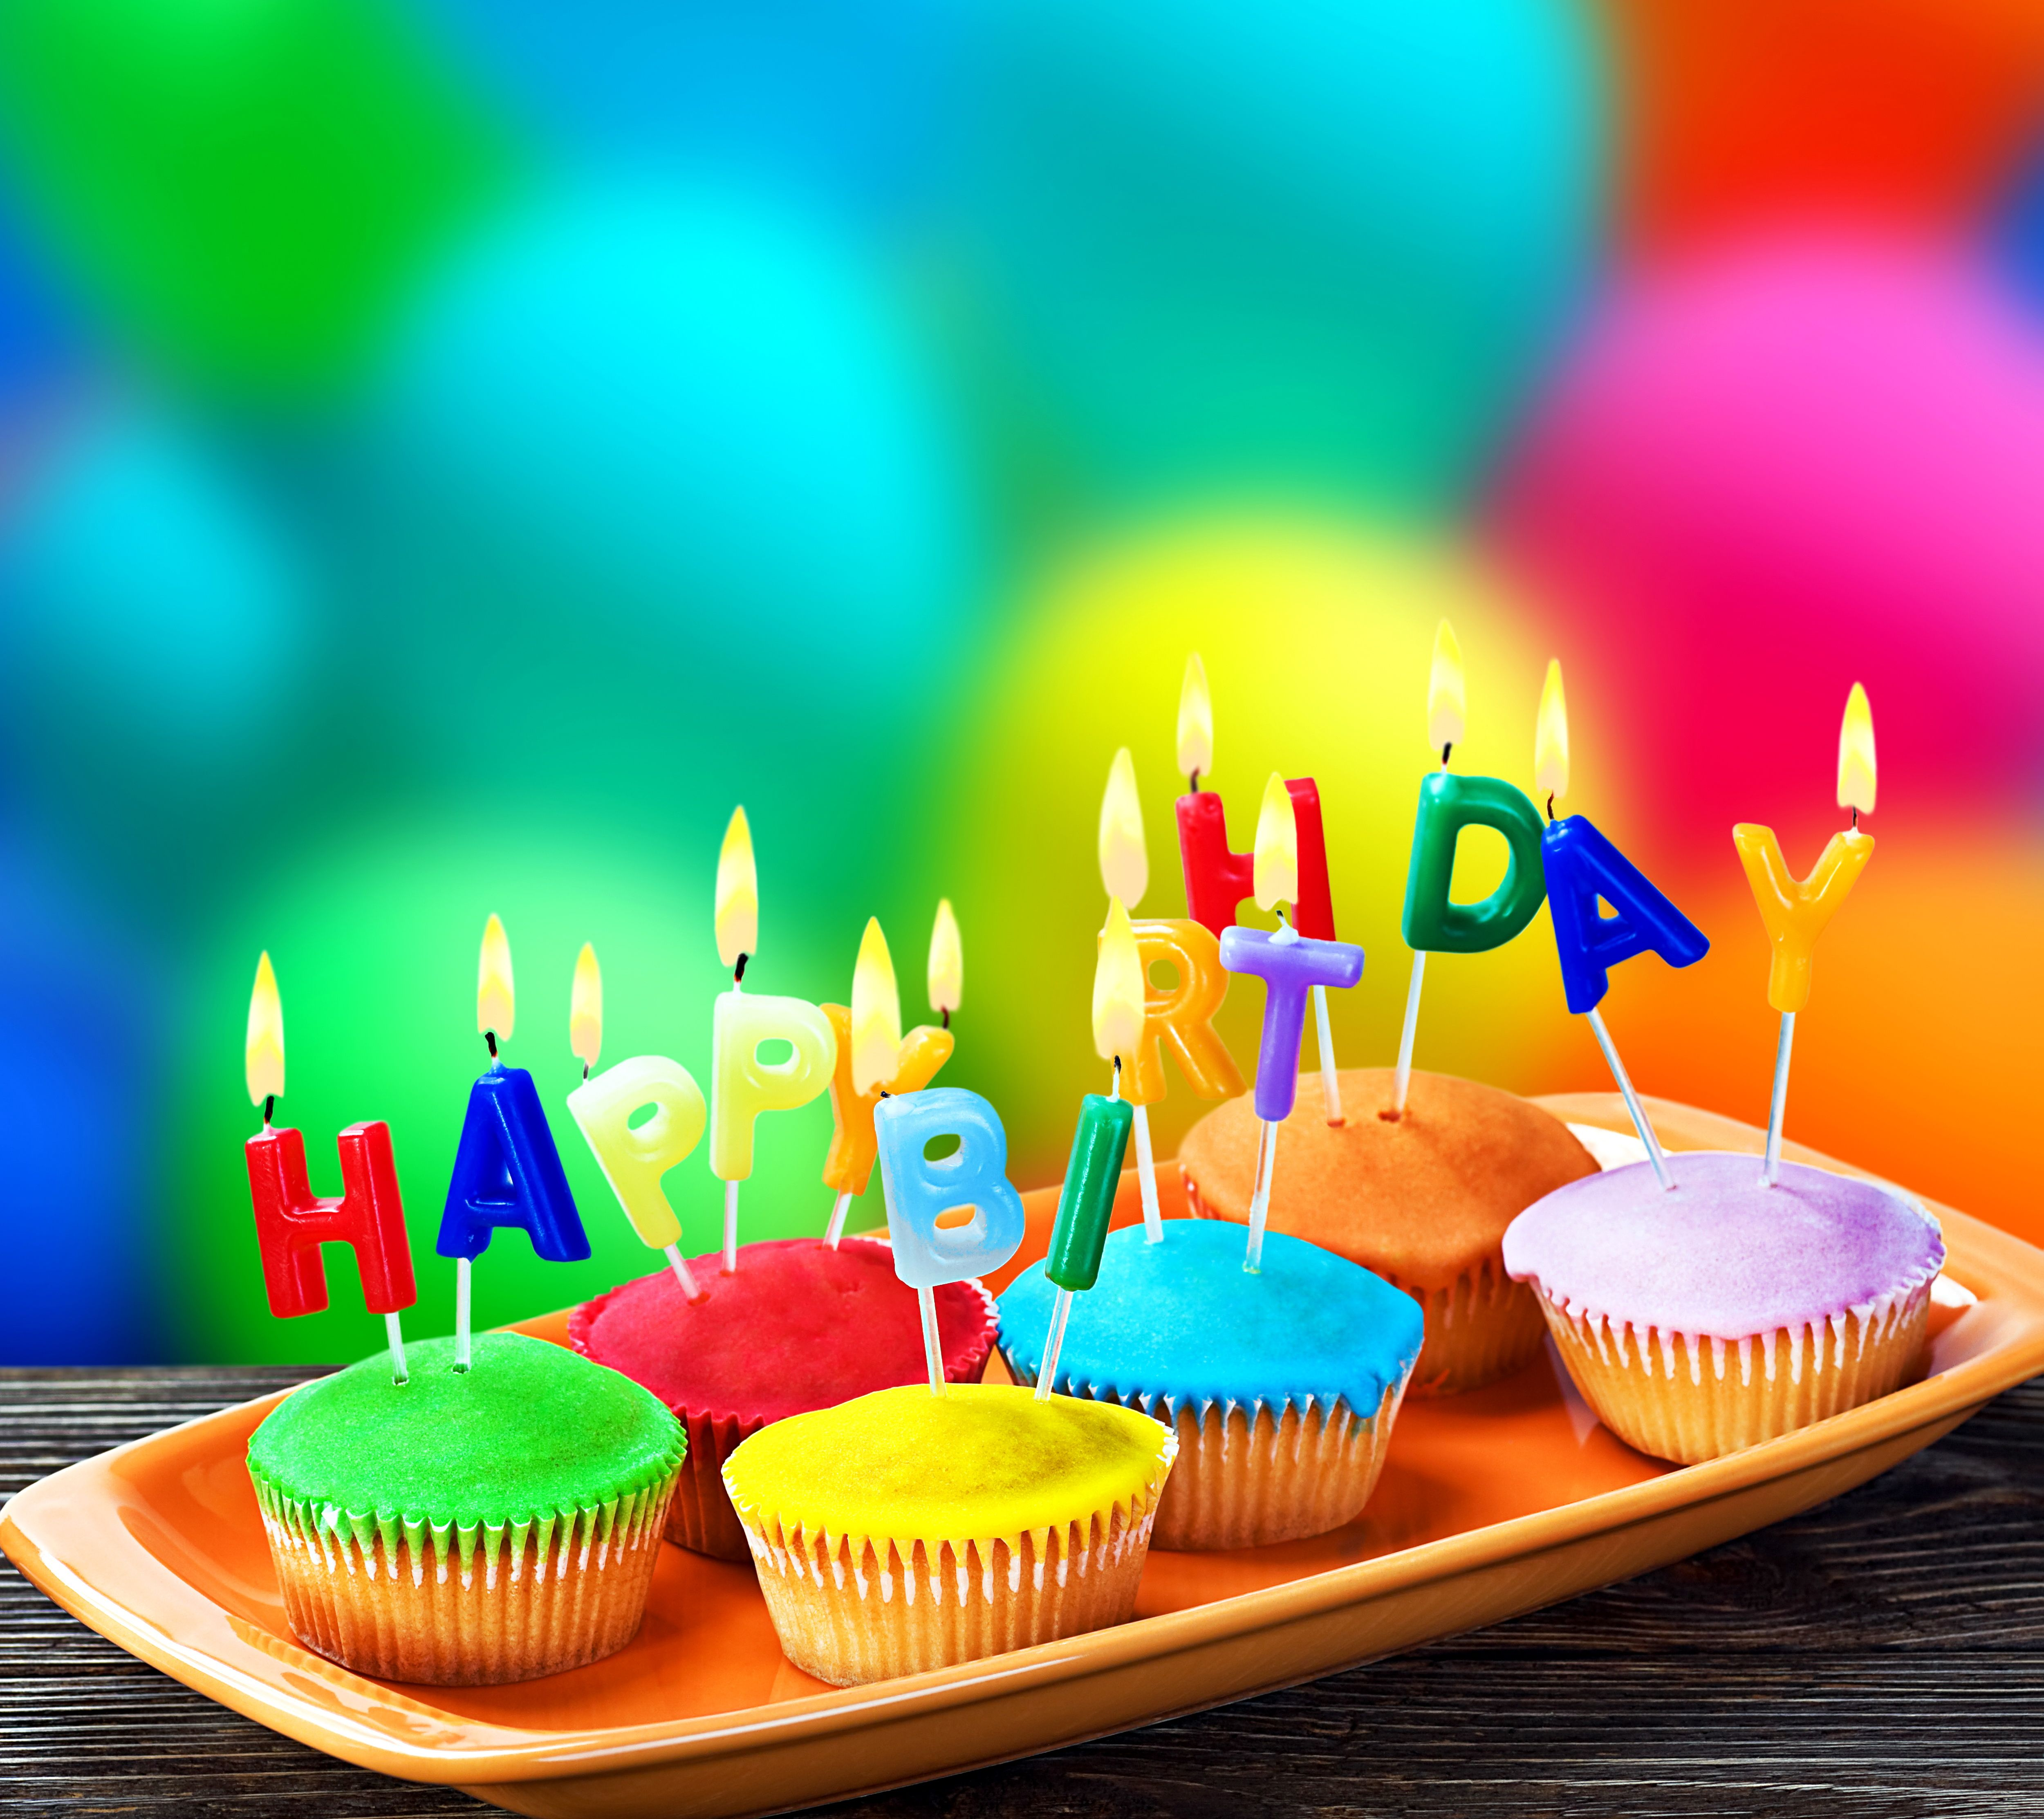 Happy Birthday Images - Google Search